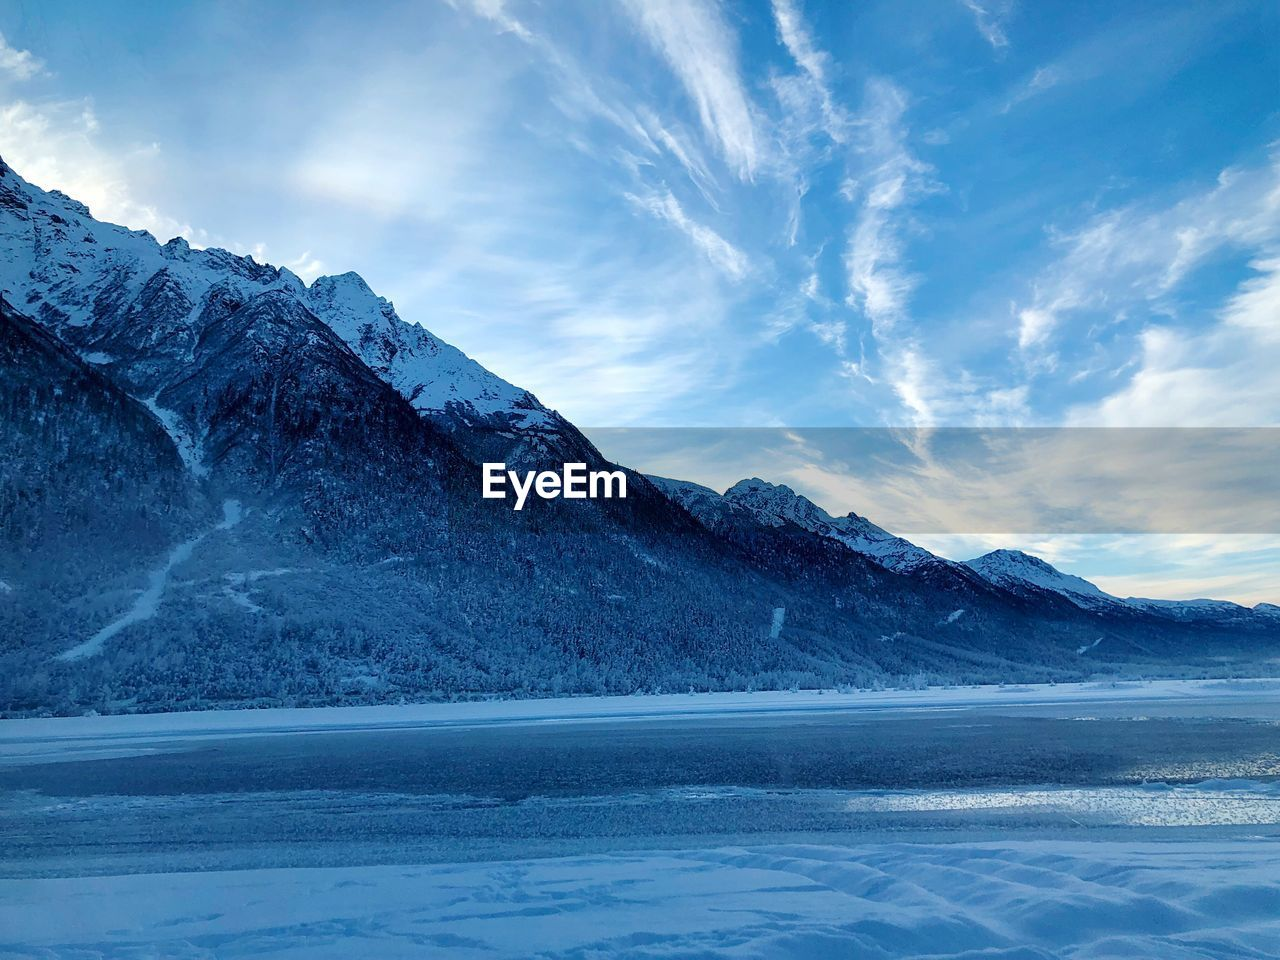 beauty in nature, scenics - nature, sky, winter, mountain, cold temperature, cloud - sky, tranquil scene, snow, tranquility, water, environment, non-urban scene, nature, waterfront, idyllic, landscape, no people, mountain range, snowcapped mountain, ice, mountain peak